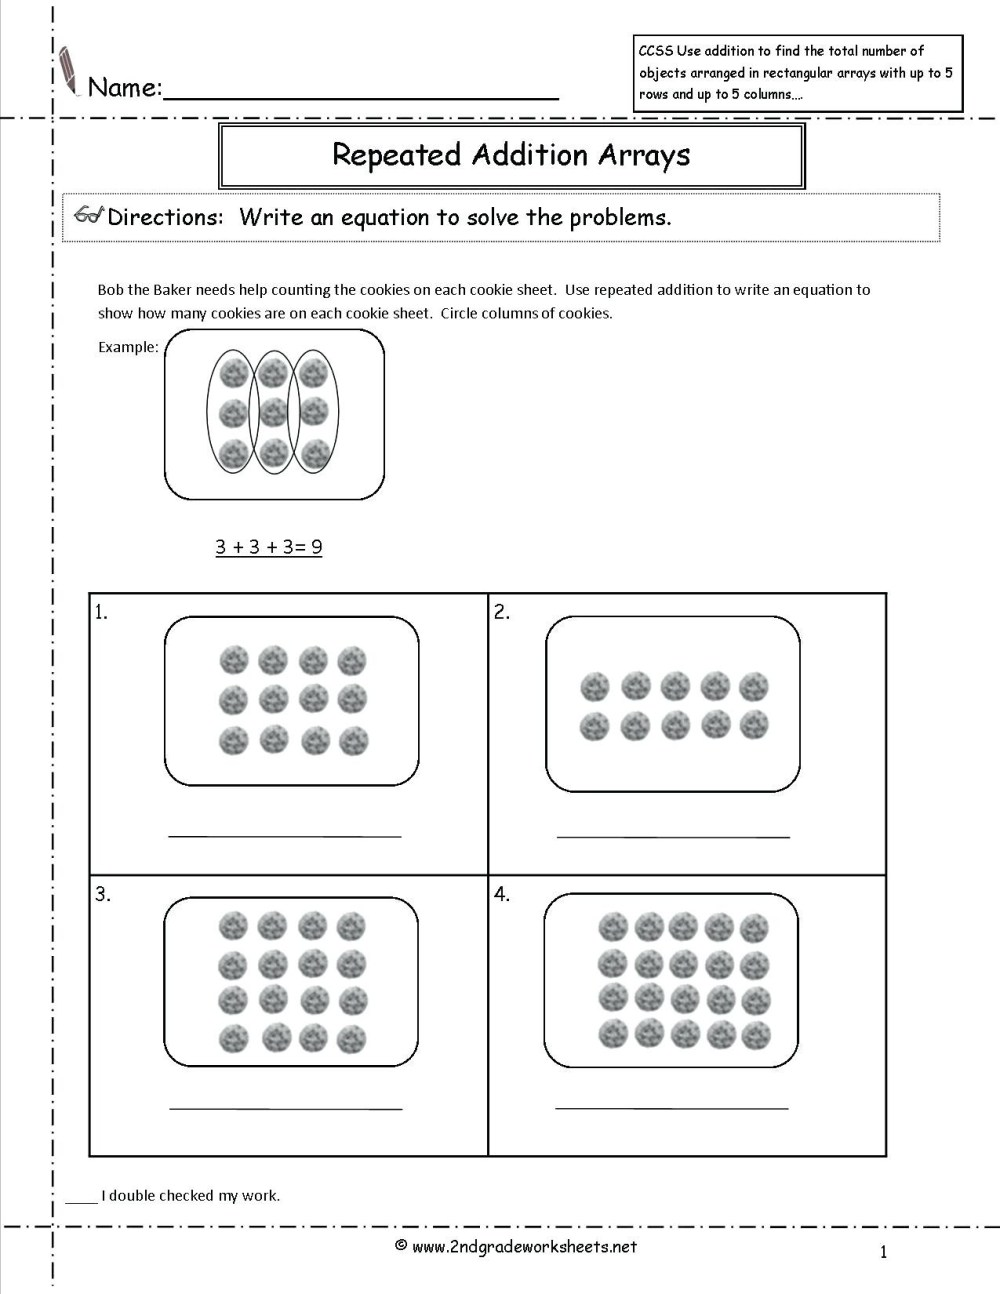 medium resolution of 4 Free Math Worksheets Second Grade 2 Addition Add 4 2 Digit Numbers In  Columns - apocalomegaproductions.com